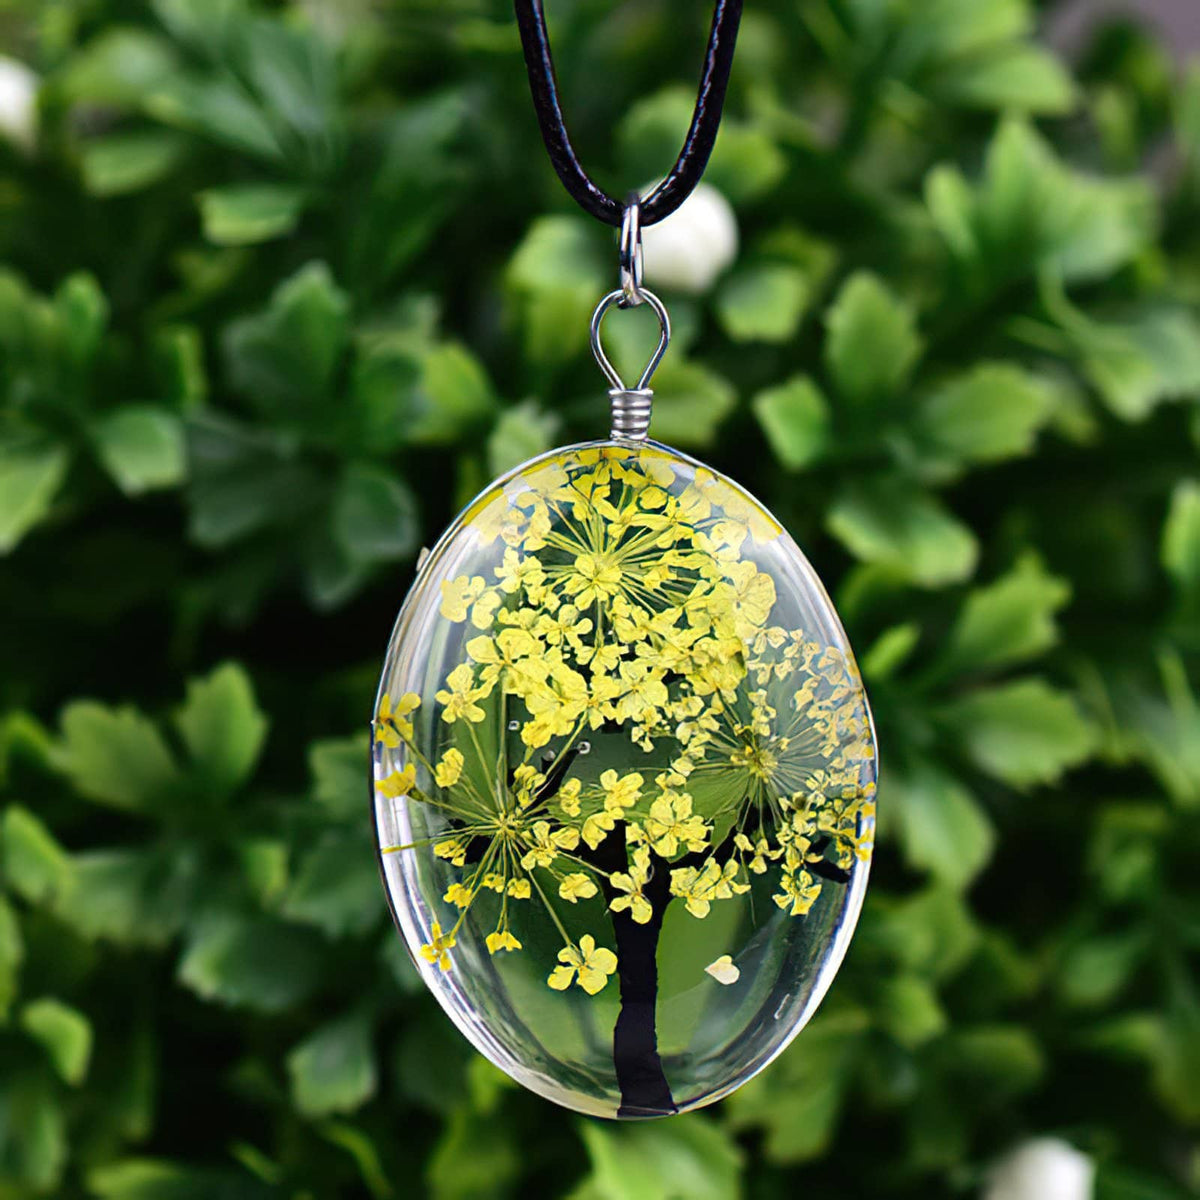 Tree of Life Dried Flower Necklace Glass Oval Terrarium in 10 Colors Free Shipping from USA (3936682836062)